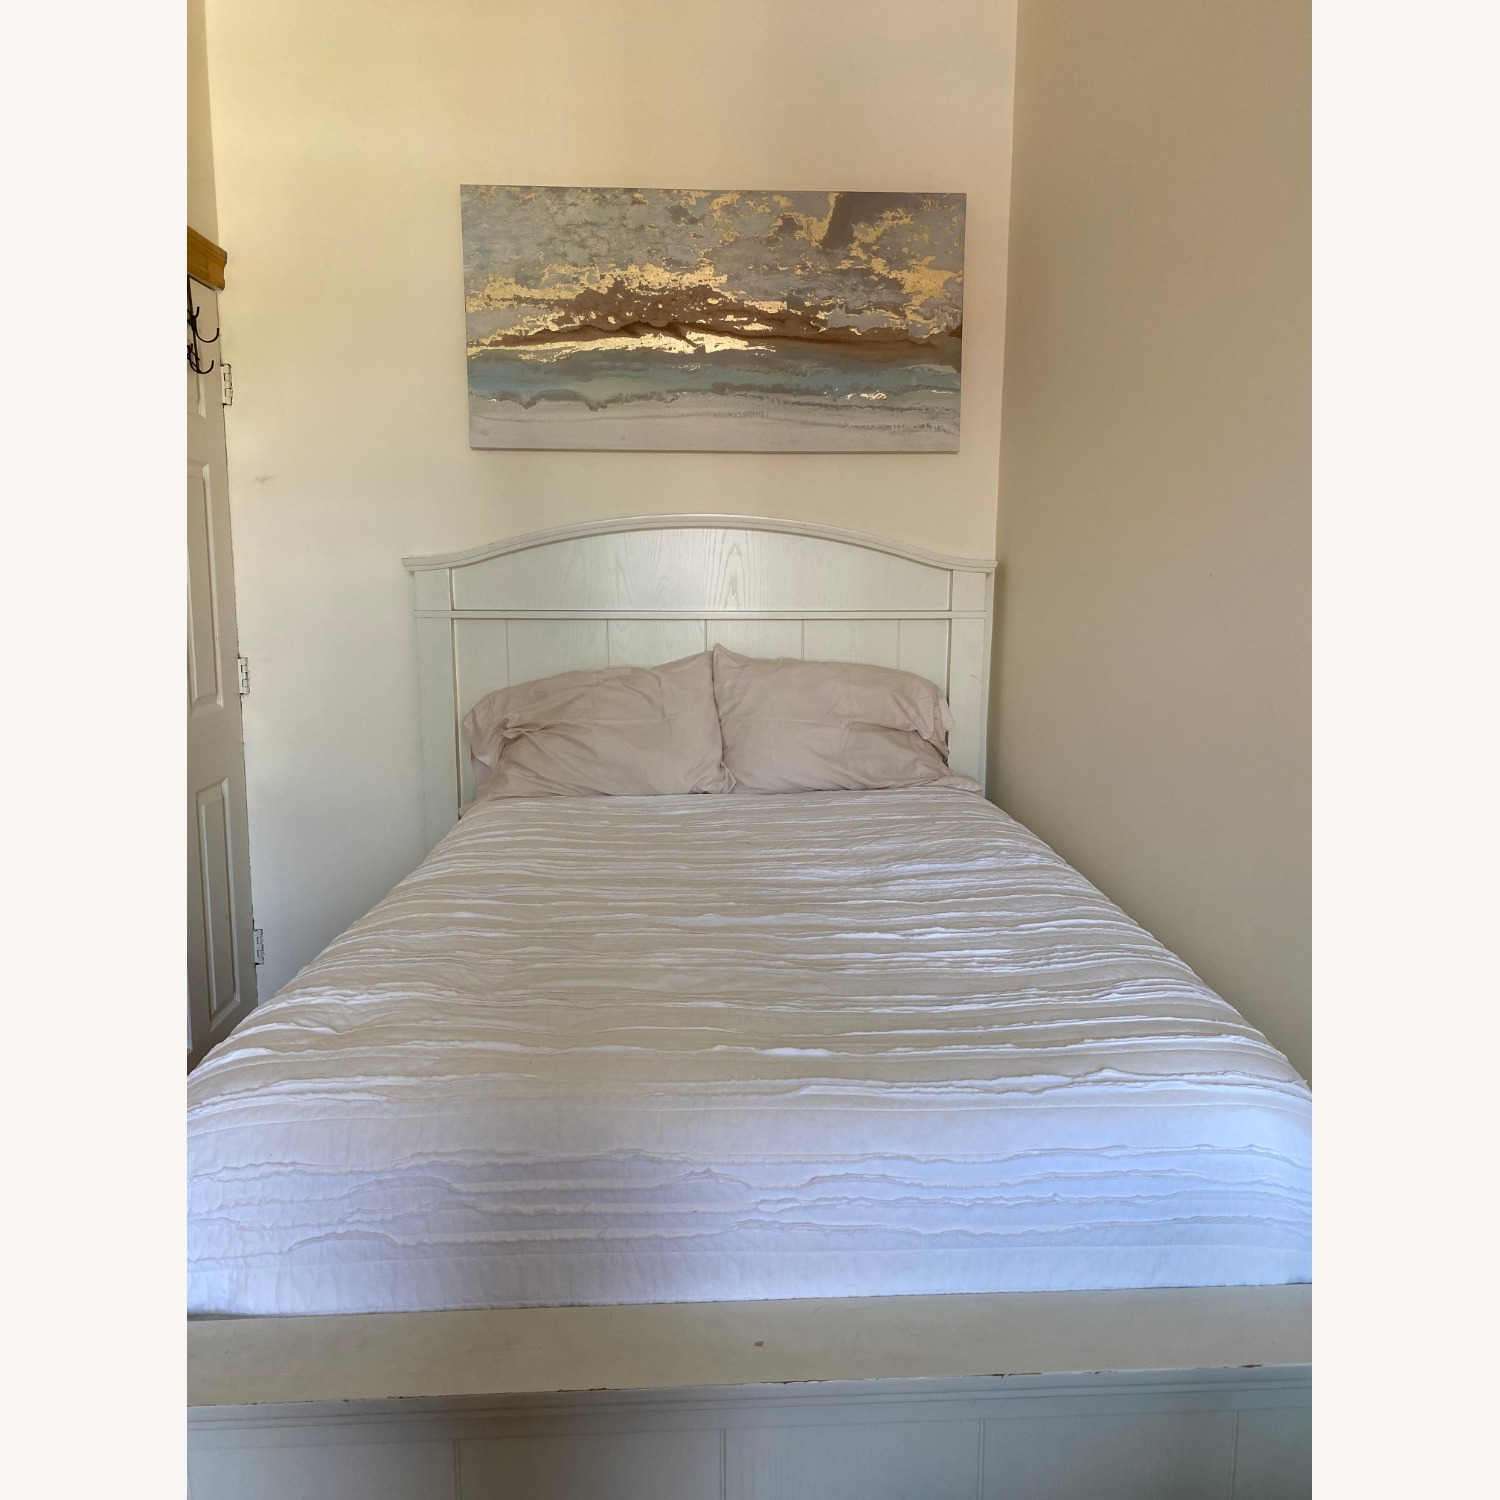 Pottery Barn Full Sized Headboard and Frame - image-1